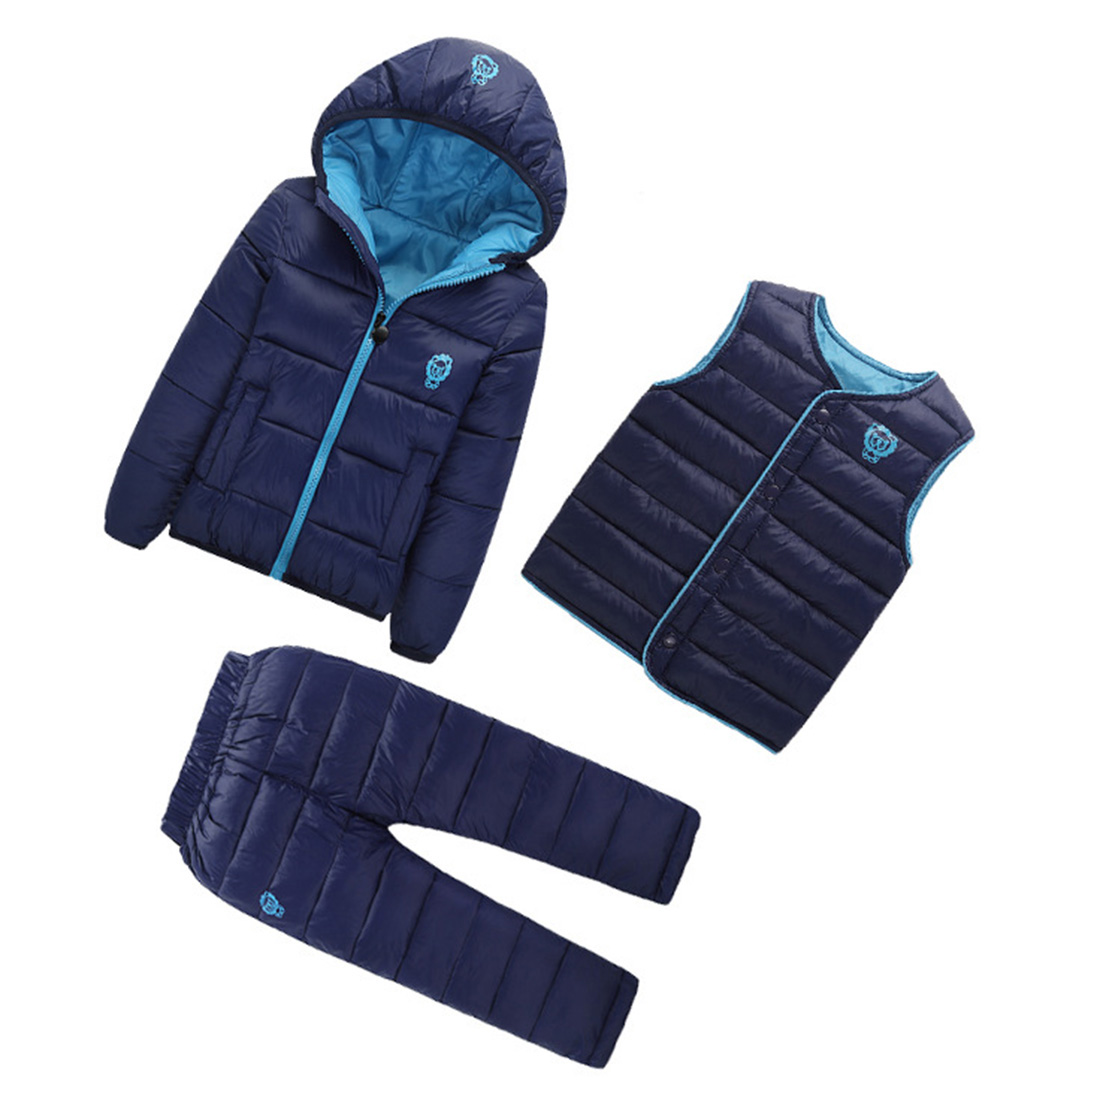 3 Pcs Lot Winter Baby Girls Boys Clothes Sets Children Down Cotton padded Coat 6 Colors 6 Size